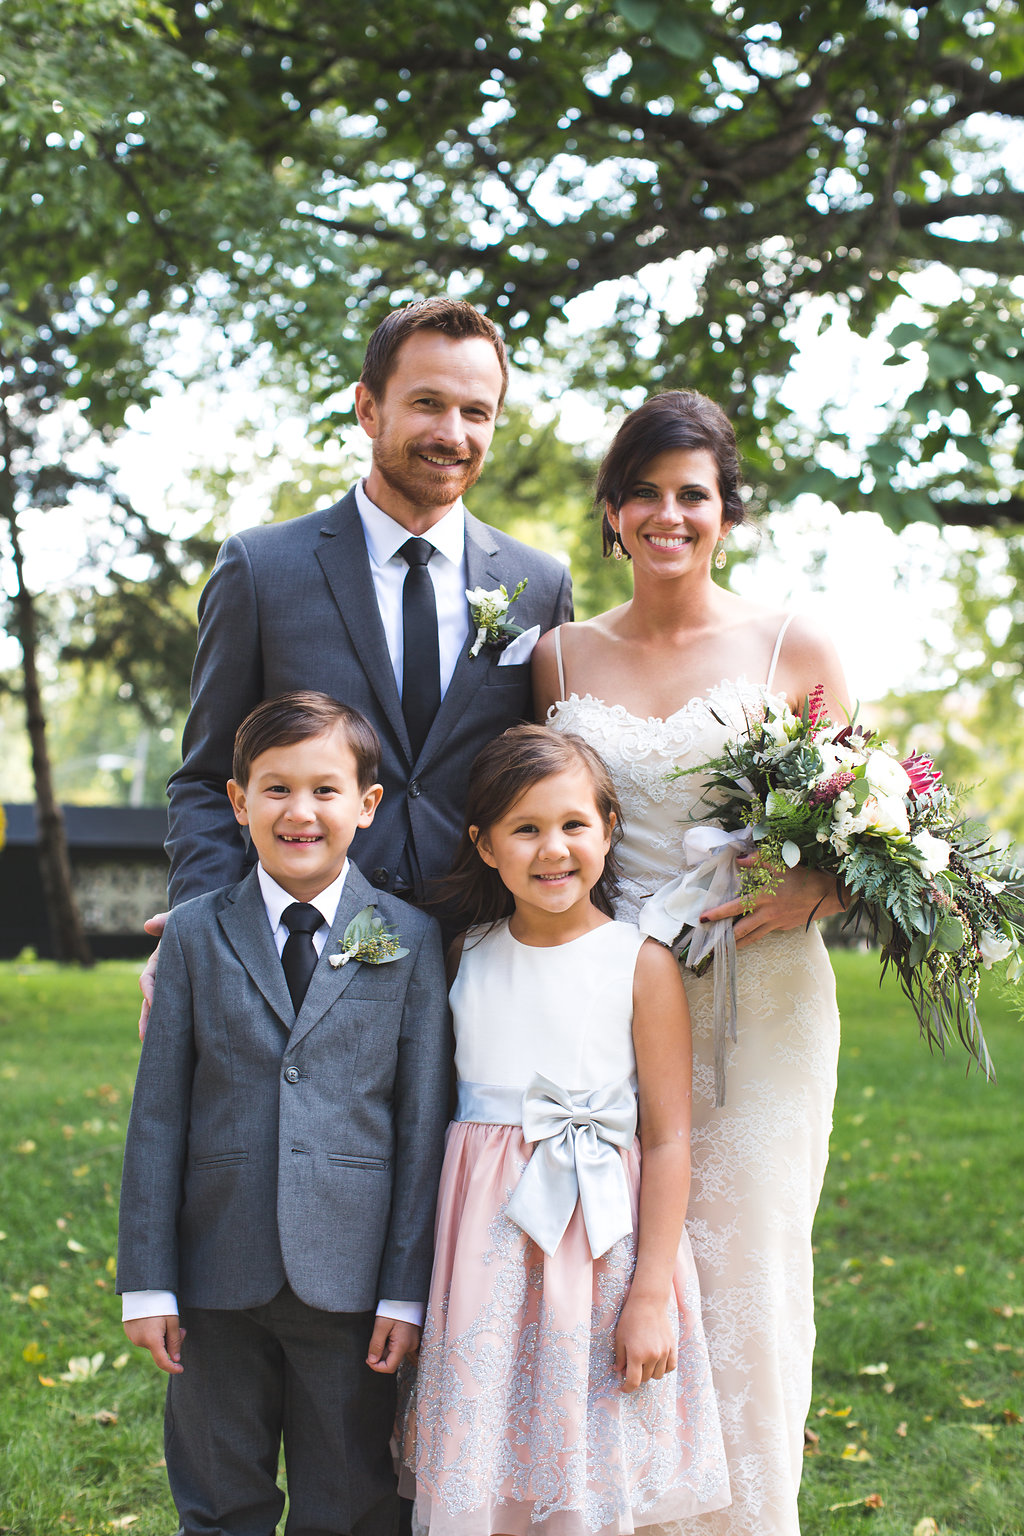 flower girl and ring bearer in mini bride and groom outfits   Annunciation church wedding   bride cradling bouquet   groom with scruff